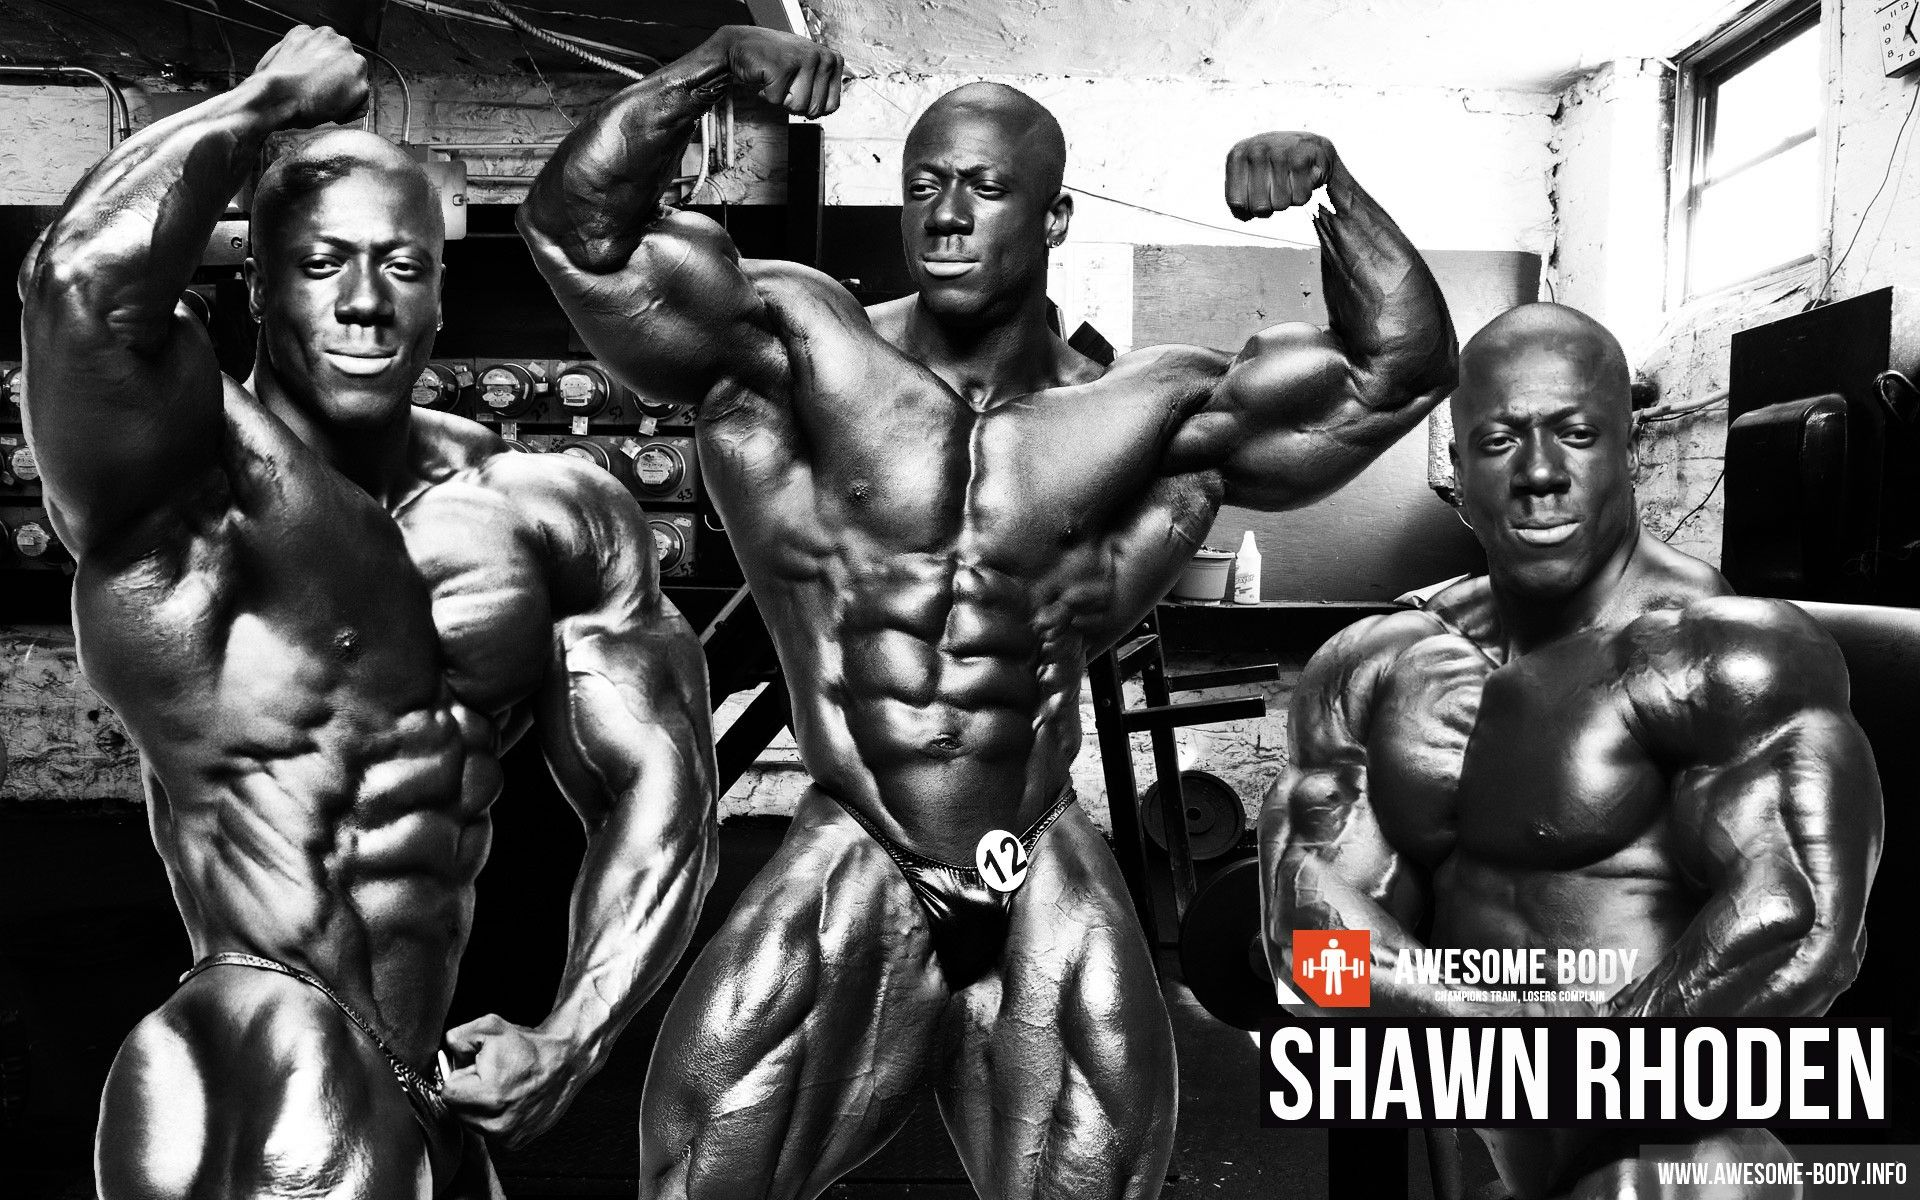 shawn rhoden 2013 bodybuilding wallpapers hd awesome